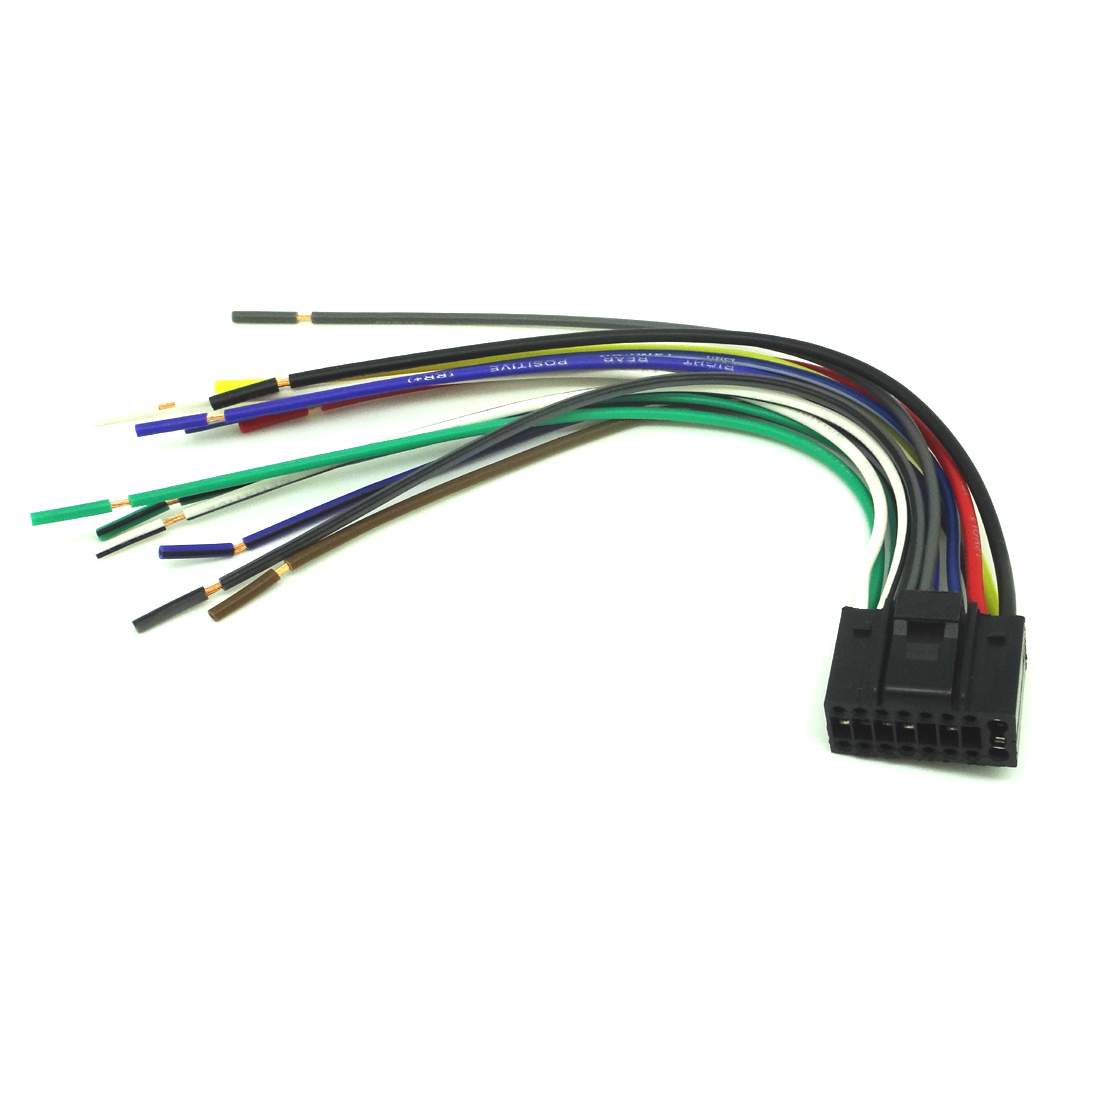 hight resolution of player 16 pin radio car audio stereo wire harness for kenwood kdc